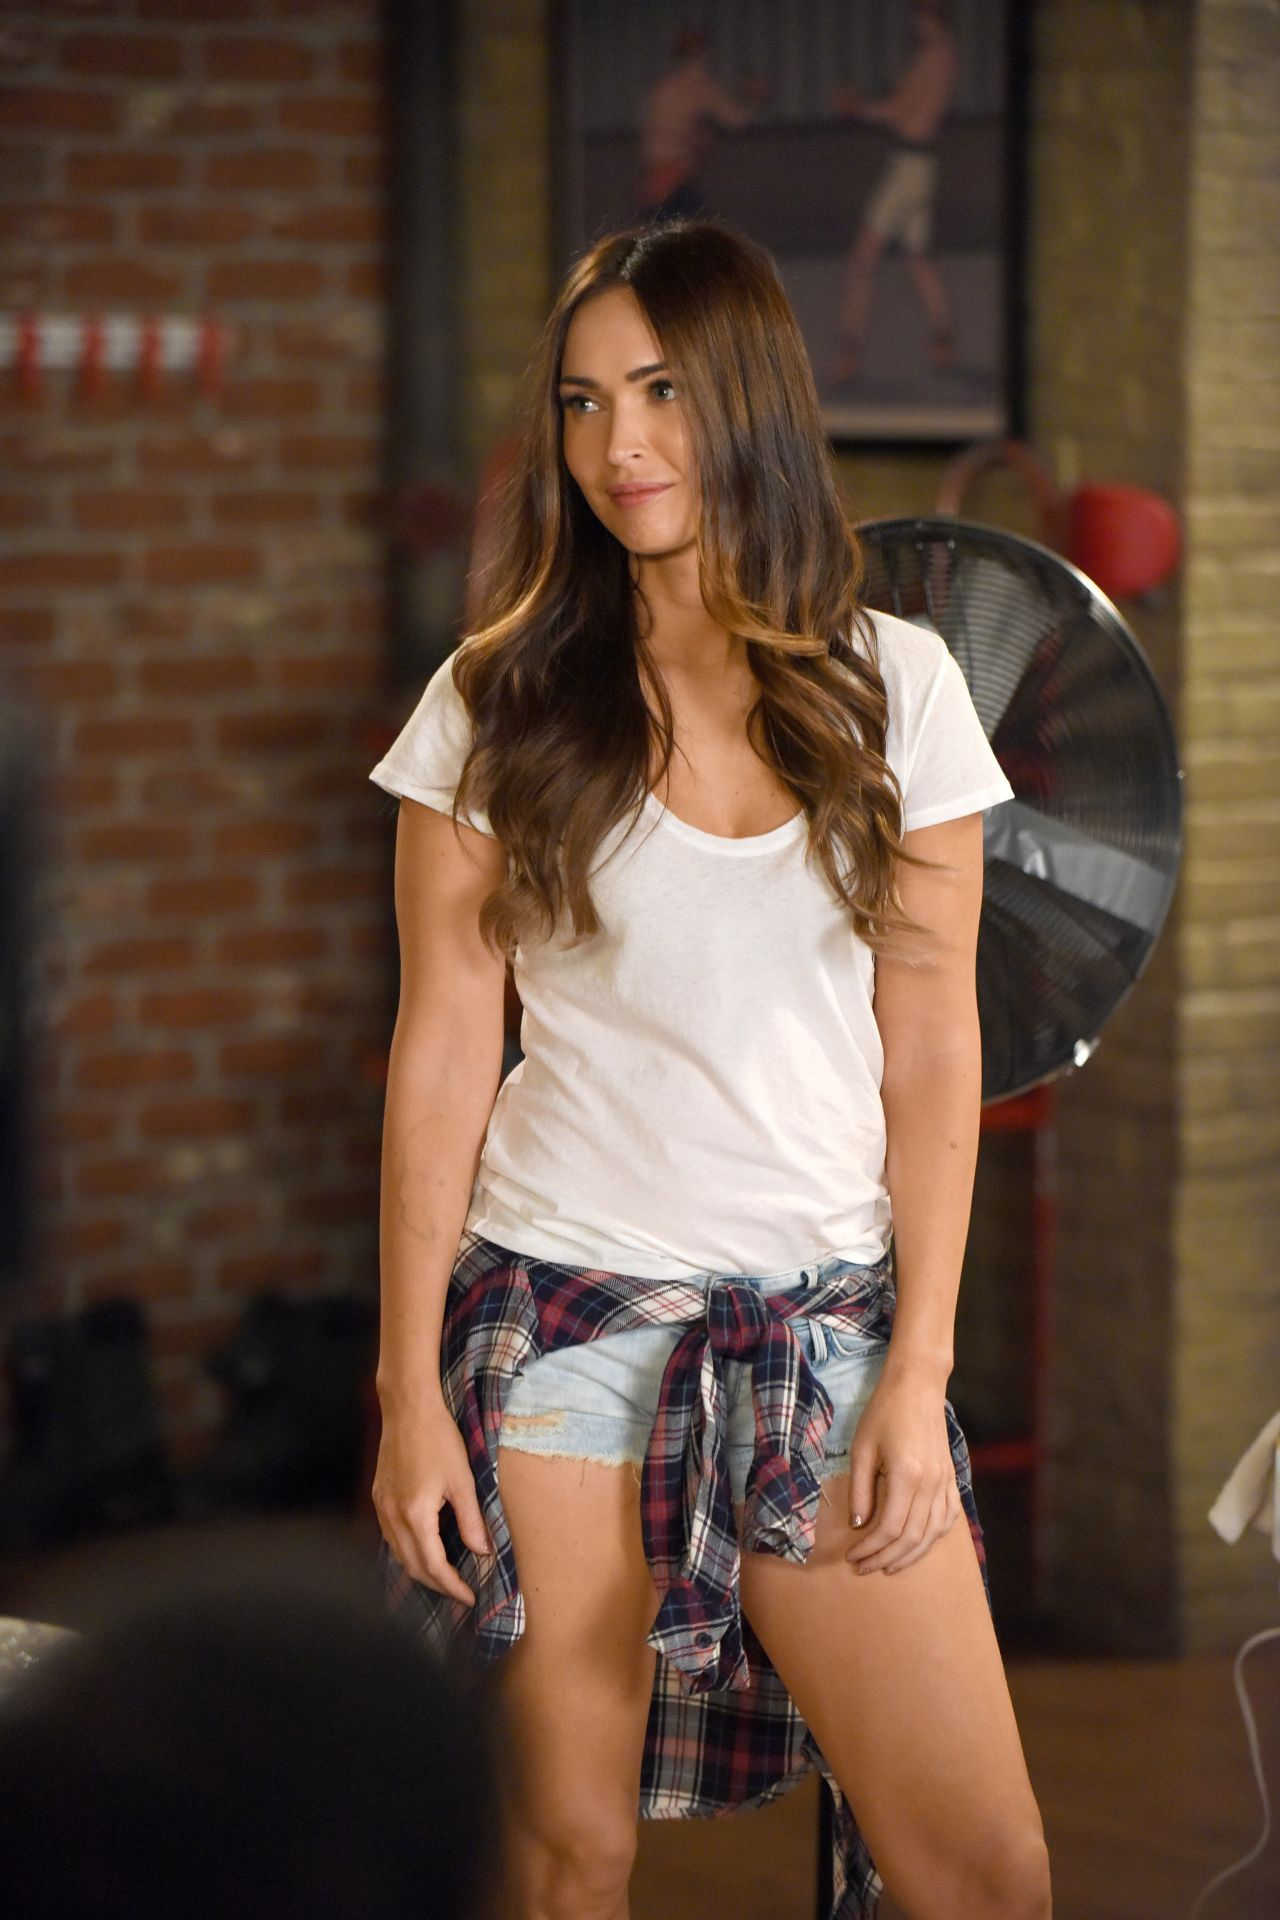 Megan Fox New Girl Season 5 Promo Photos